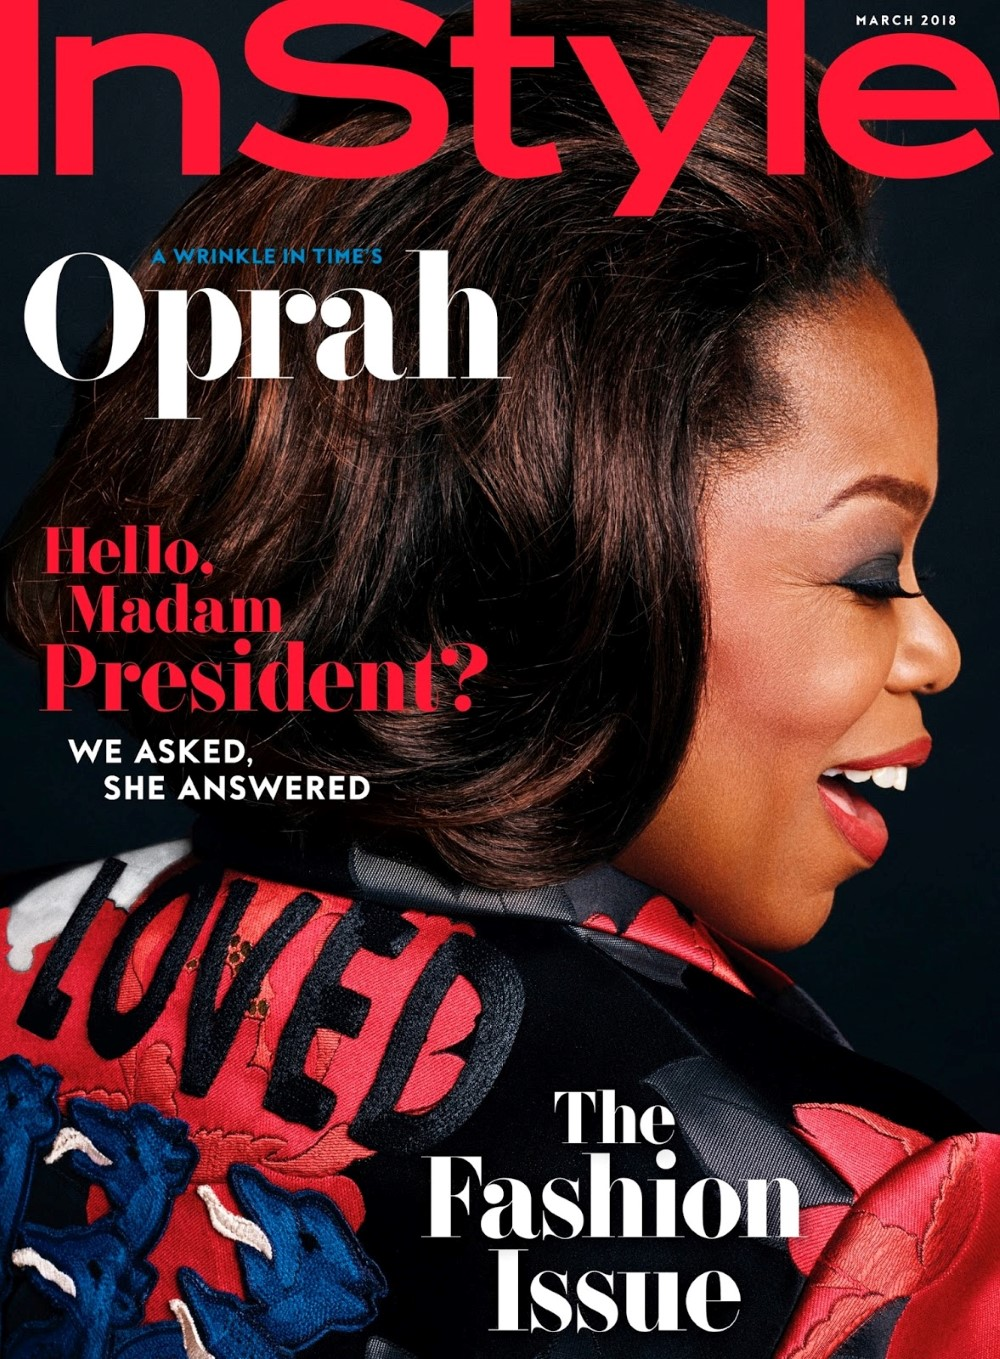 oprah instyle us february 2018 3jpg